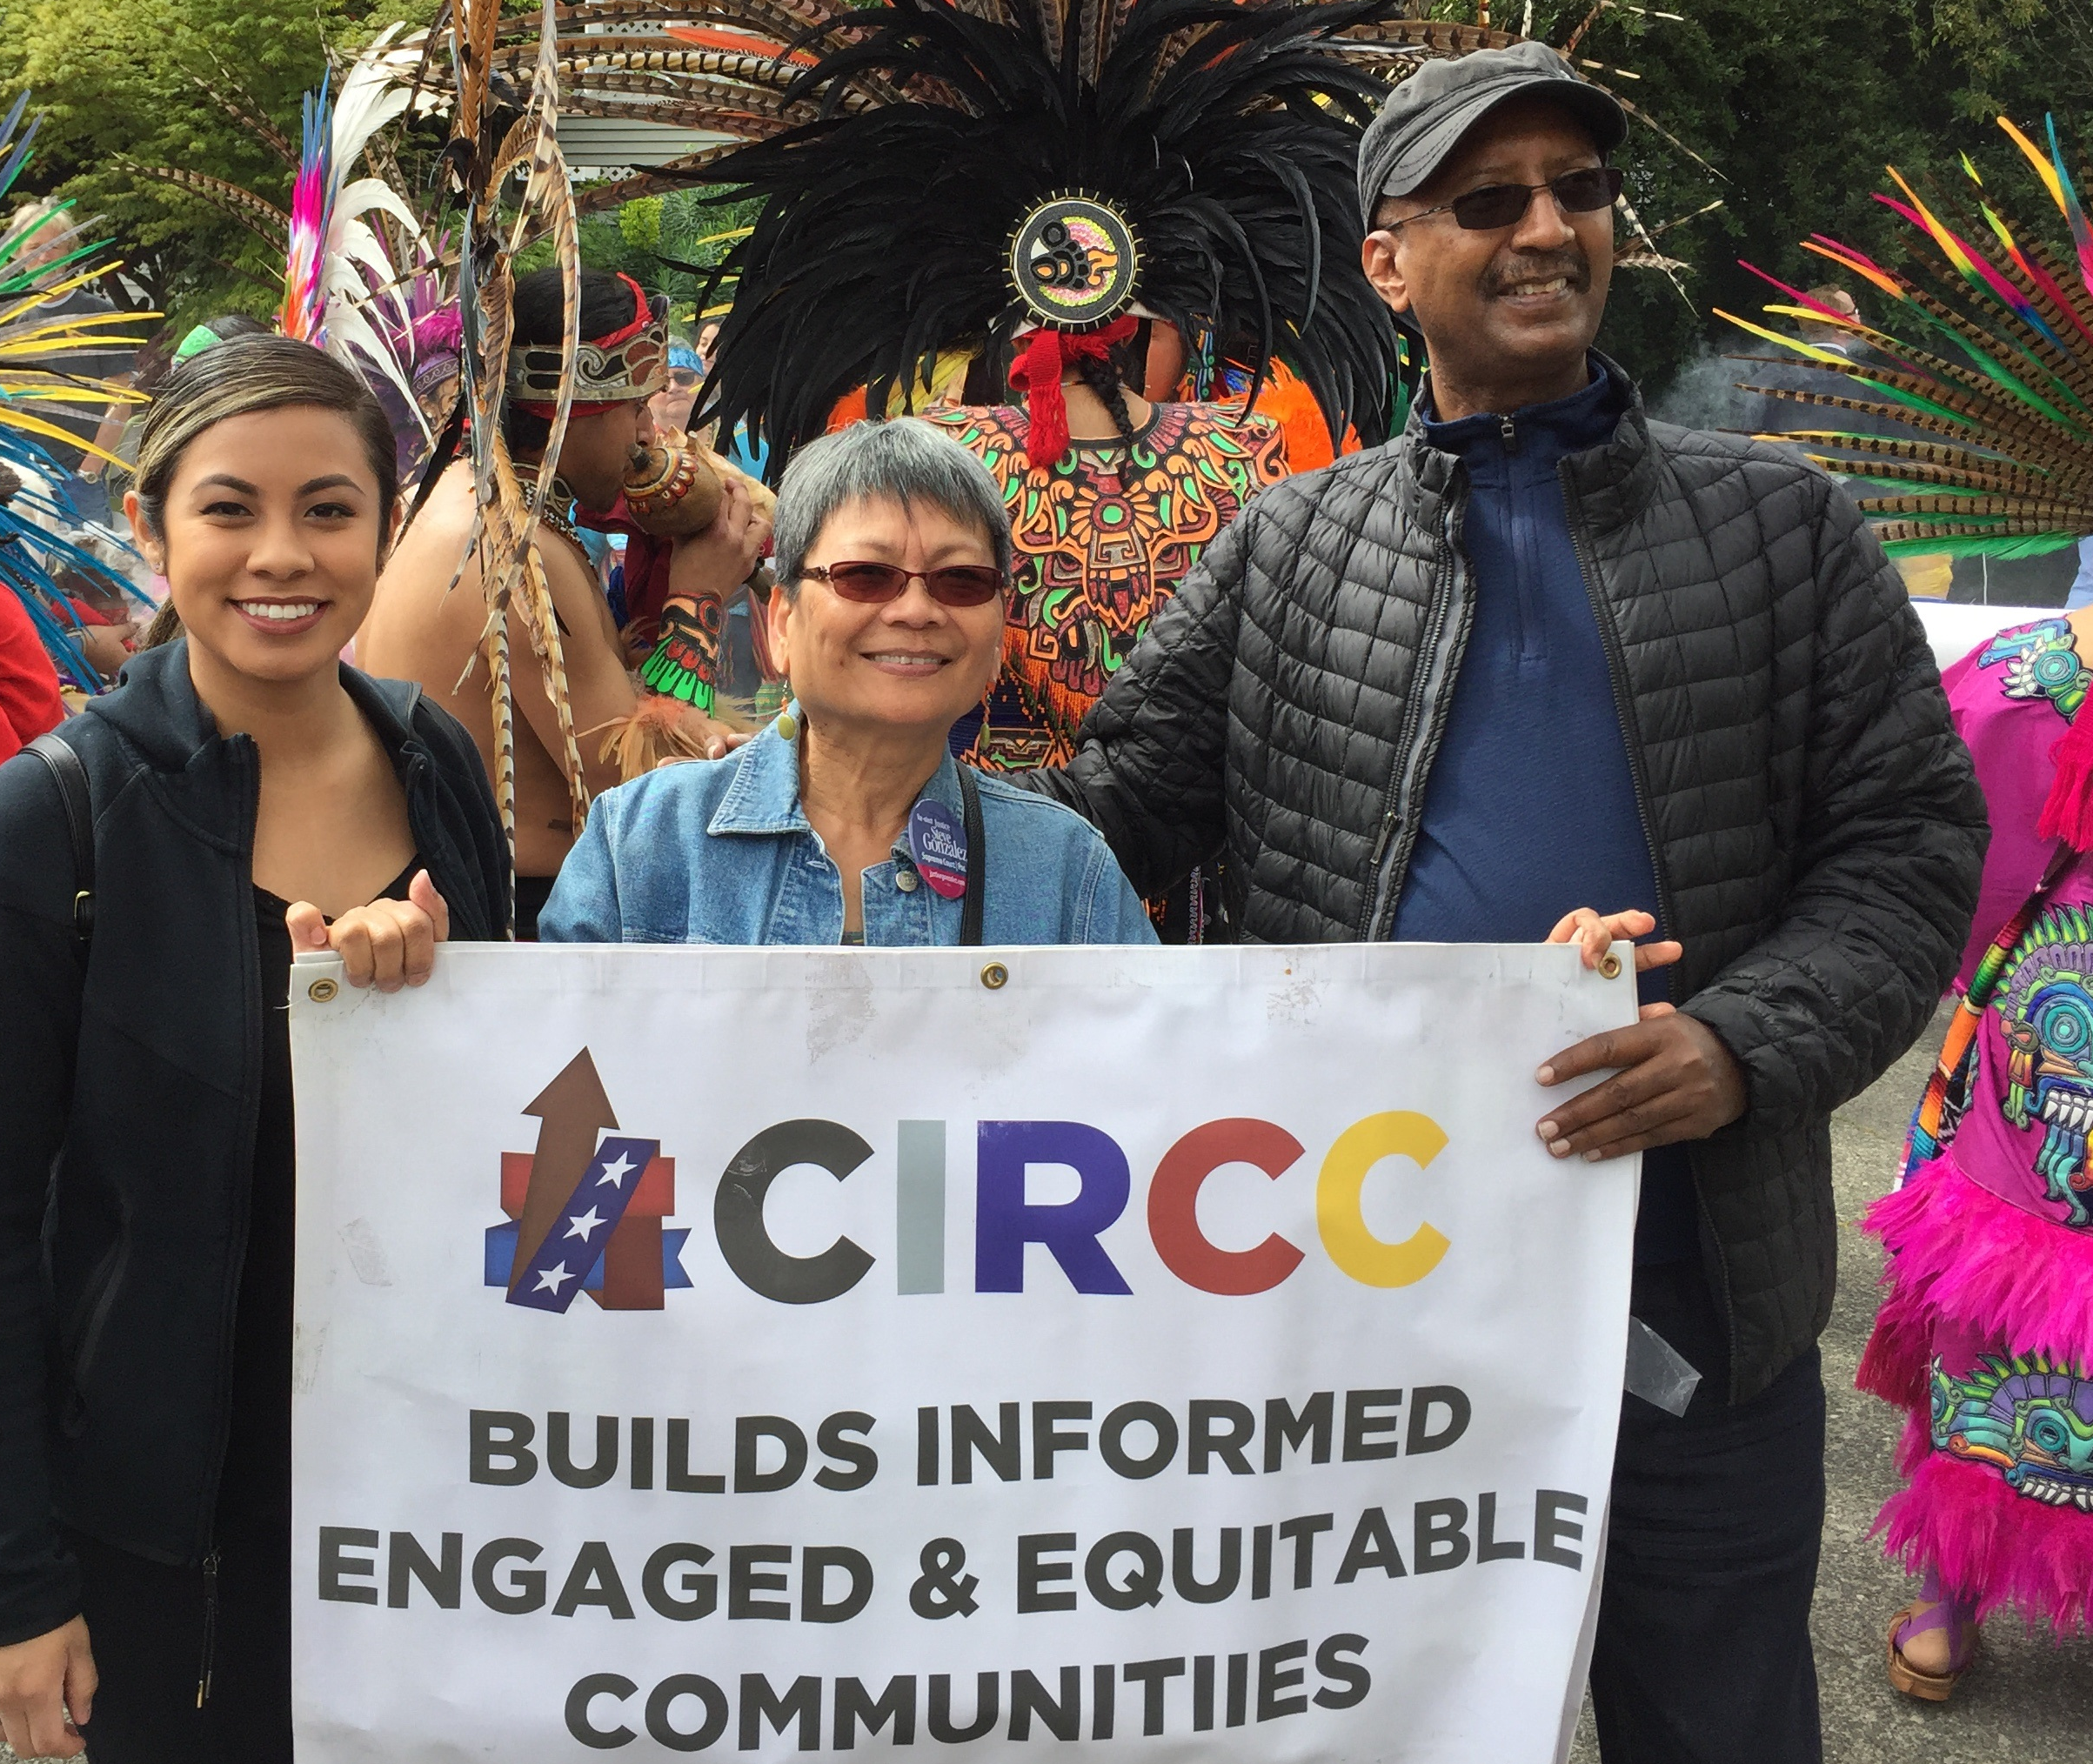 WHO WE ARE - The Coalition of Immigrants Refugees & Communities of Color is a group combining multi-cultural organizations and individuals dedicated to building informed, engaged, and equitable communities.